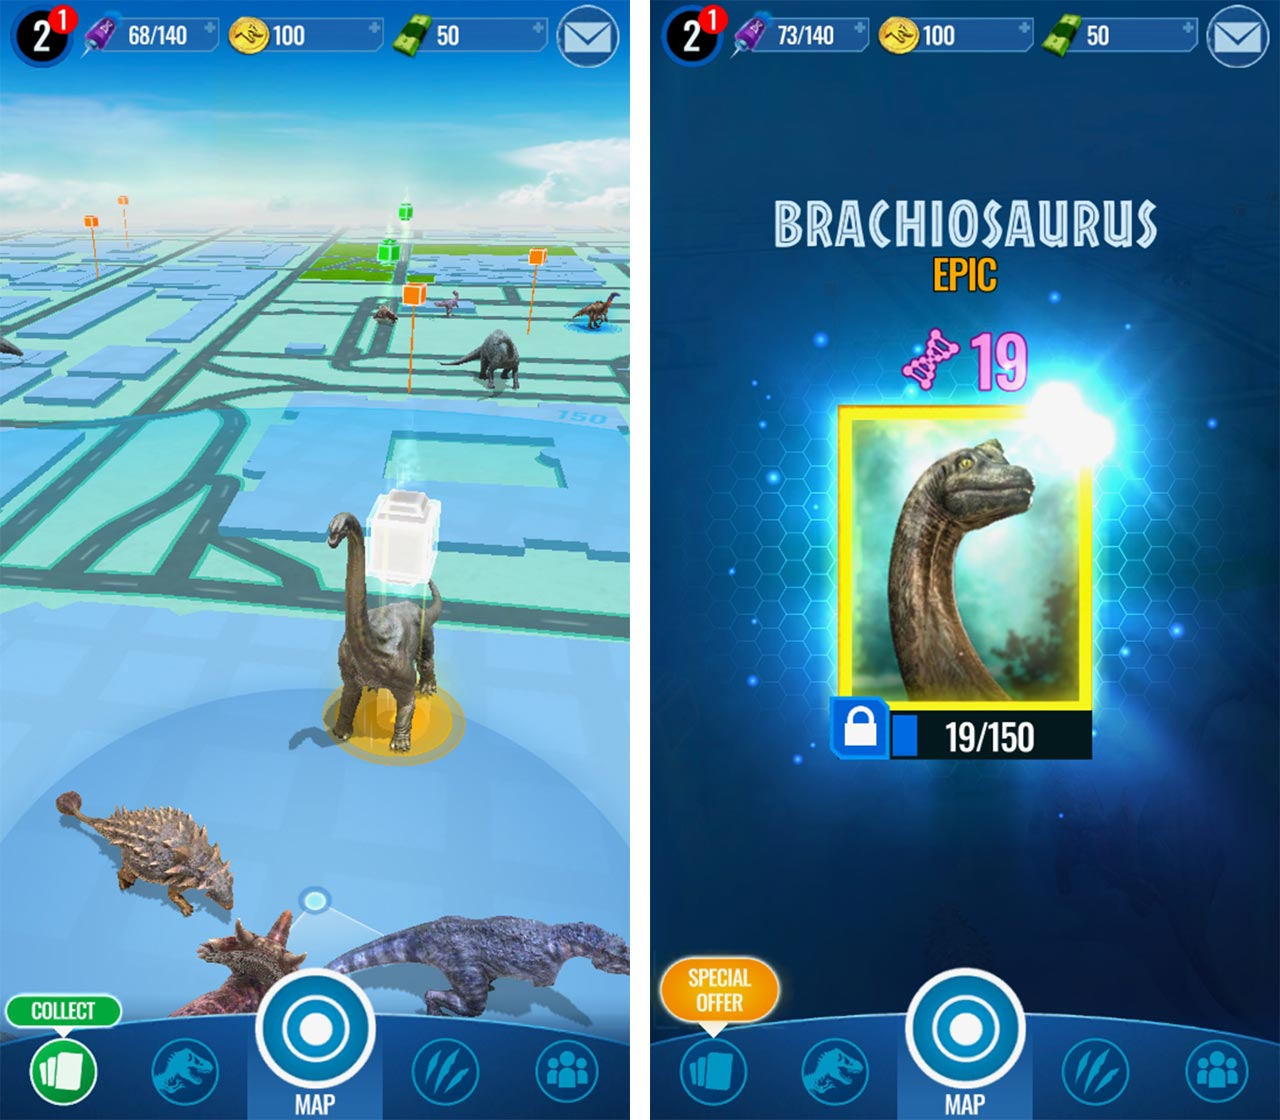 A photo of the new Epic Brachiosaurs at an Apple Store supply drop